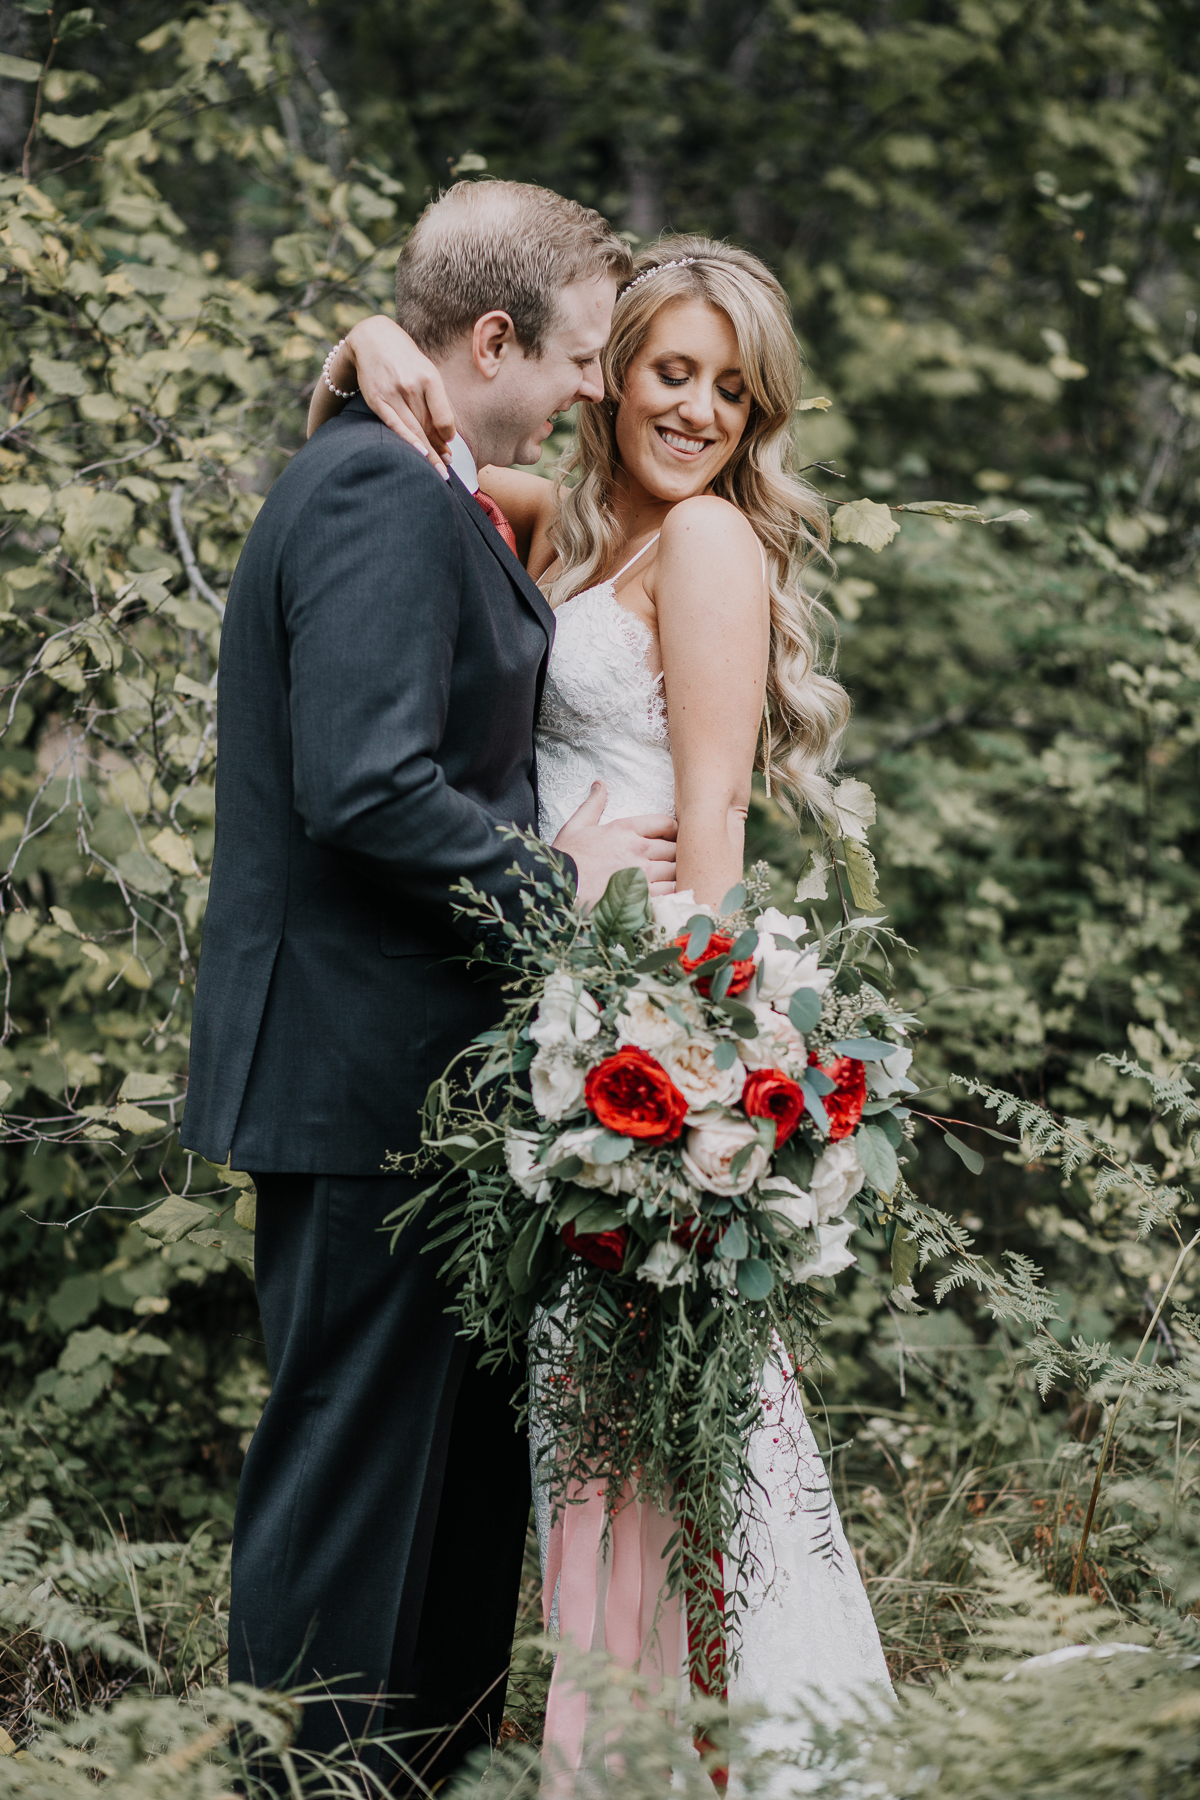 0497Swiftwater Cellars Wedding_Cle Elum Wedding_Montana Wedding Photographer_Kat & Kyle_September 15, 2018-92.jpg